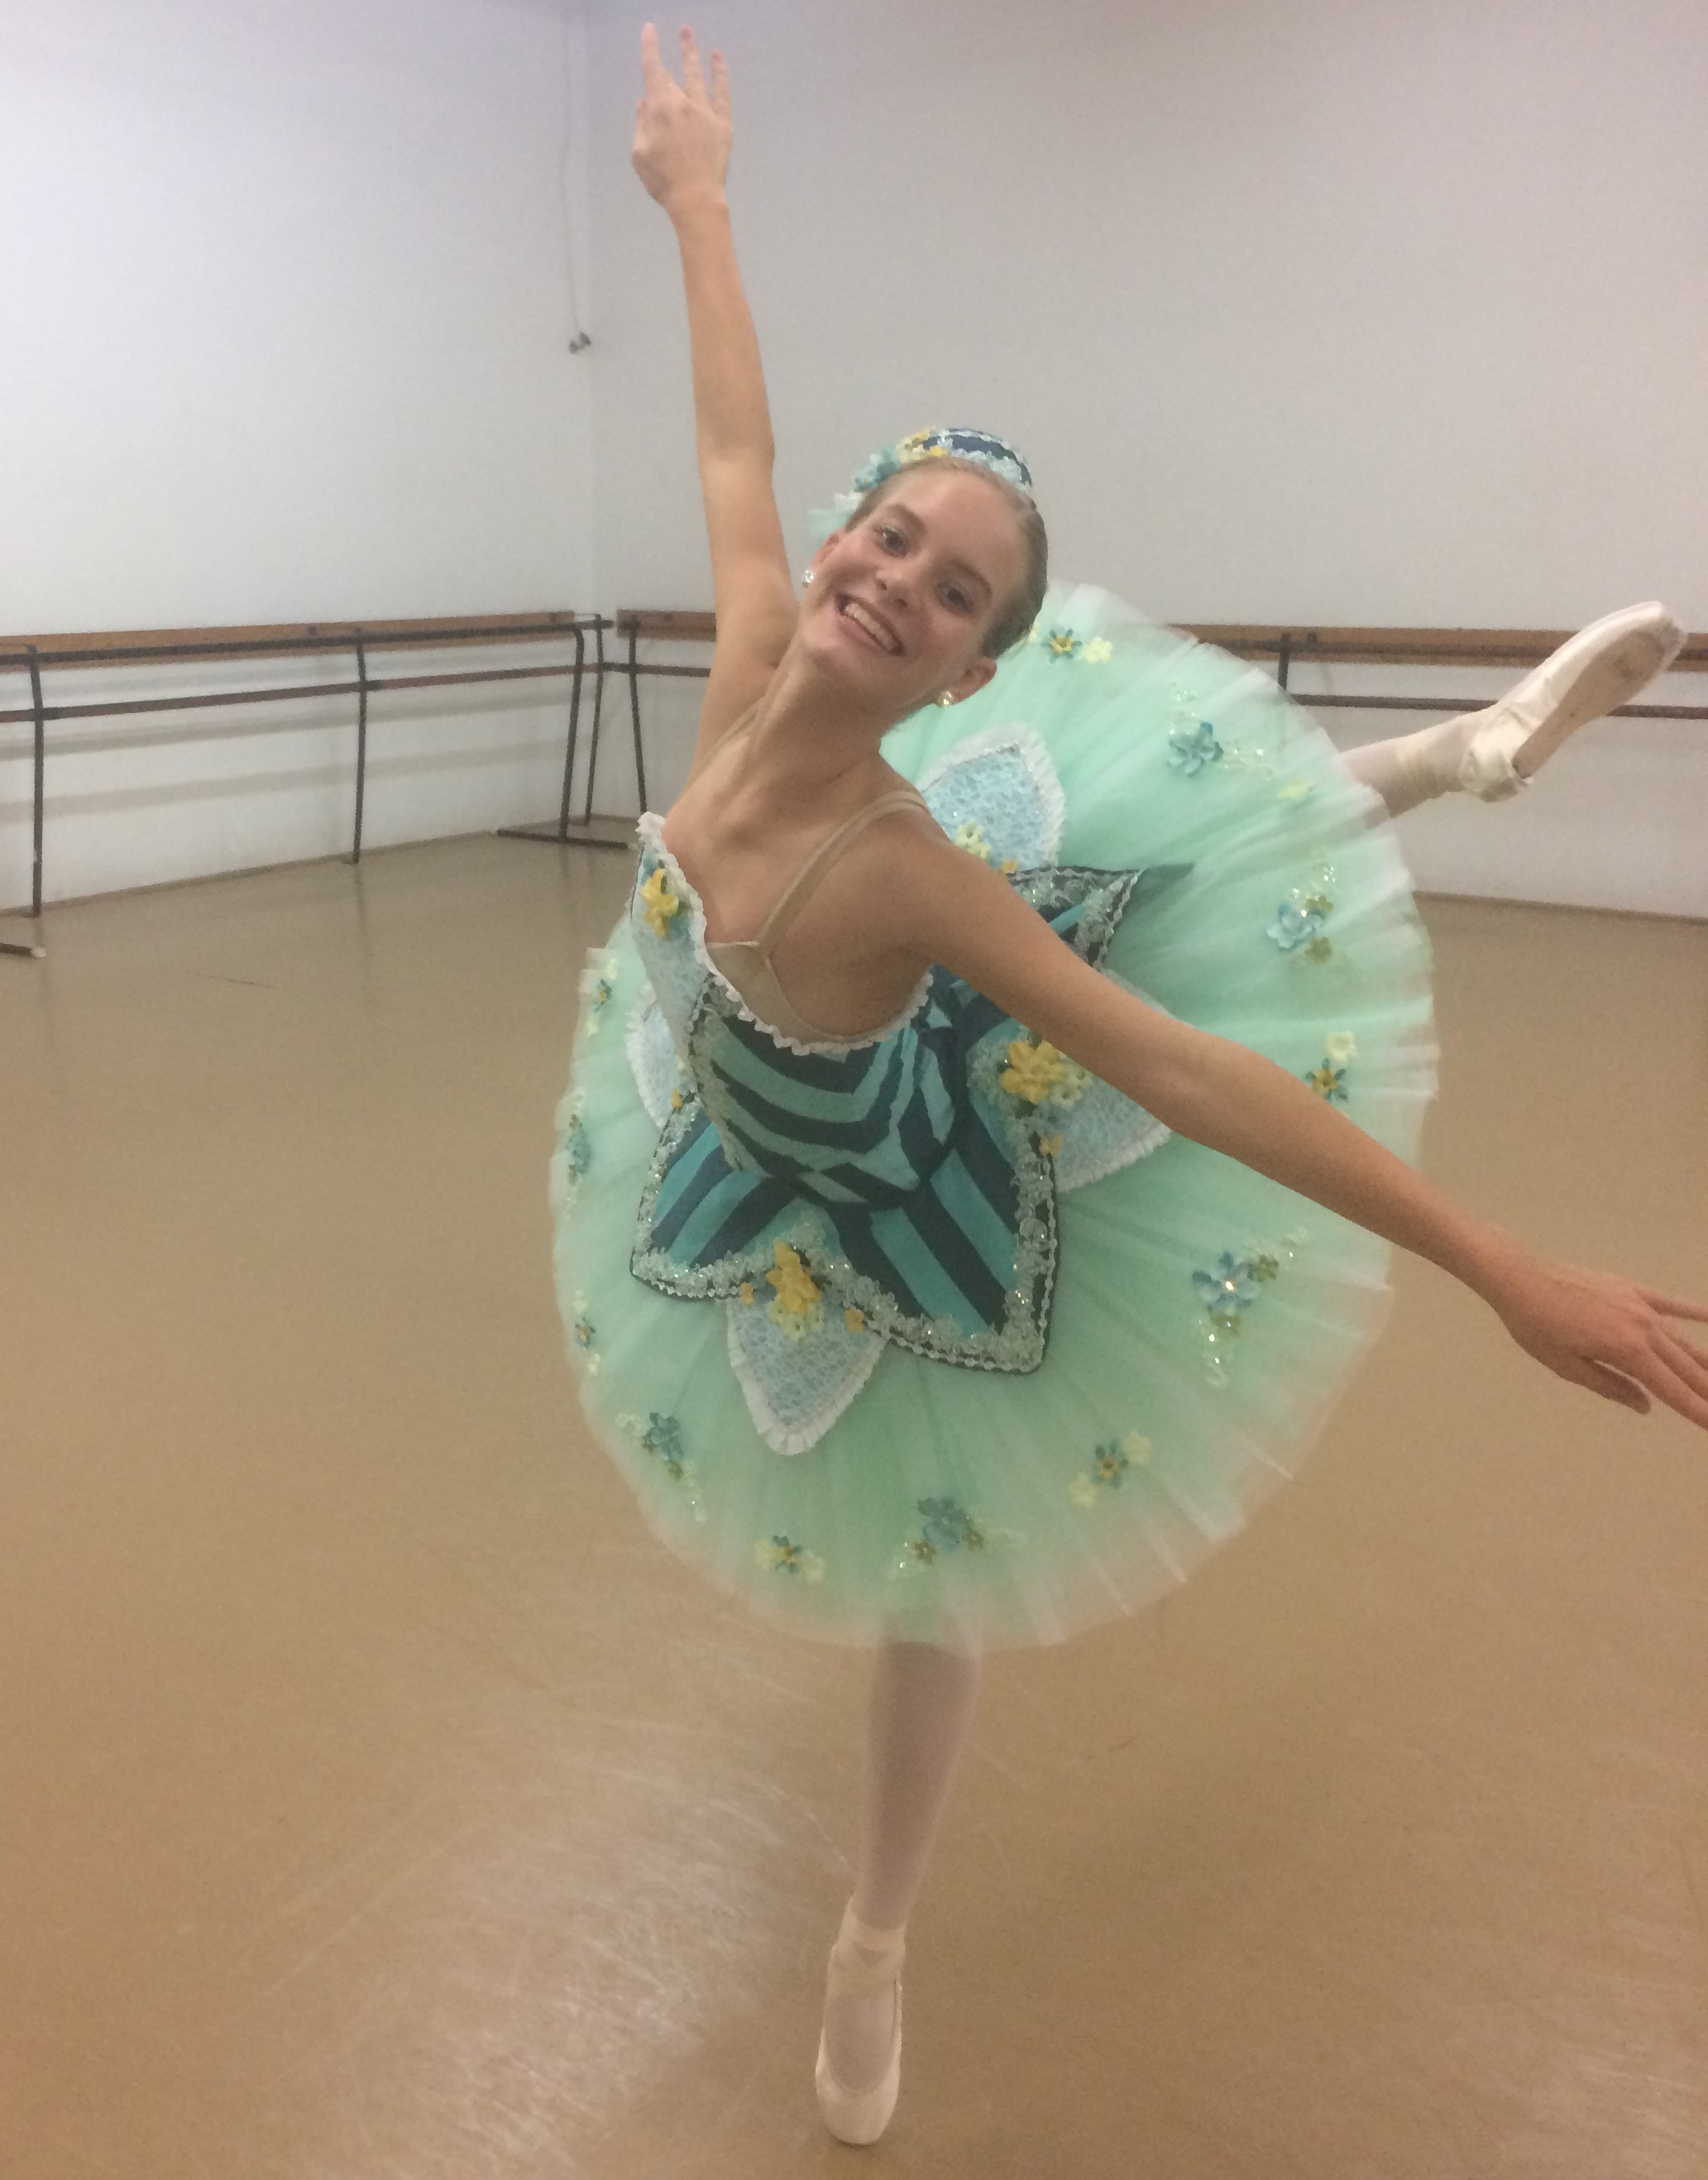 Maia McBride posing in arabesque wearing a green tutu